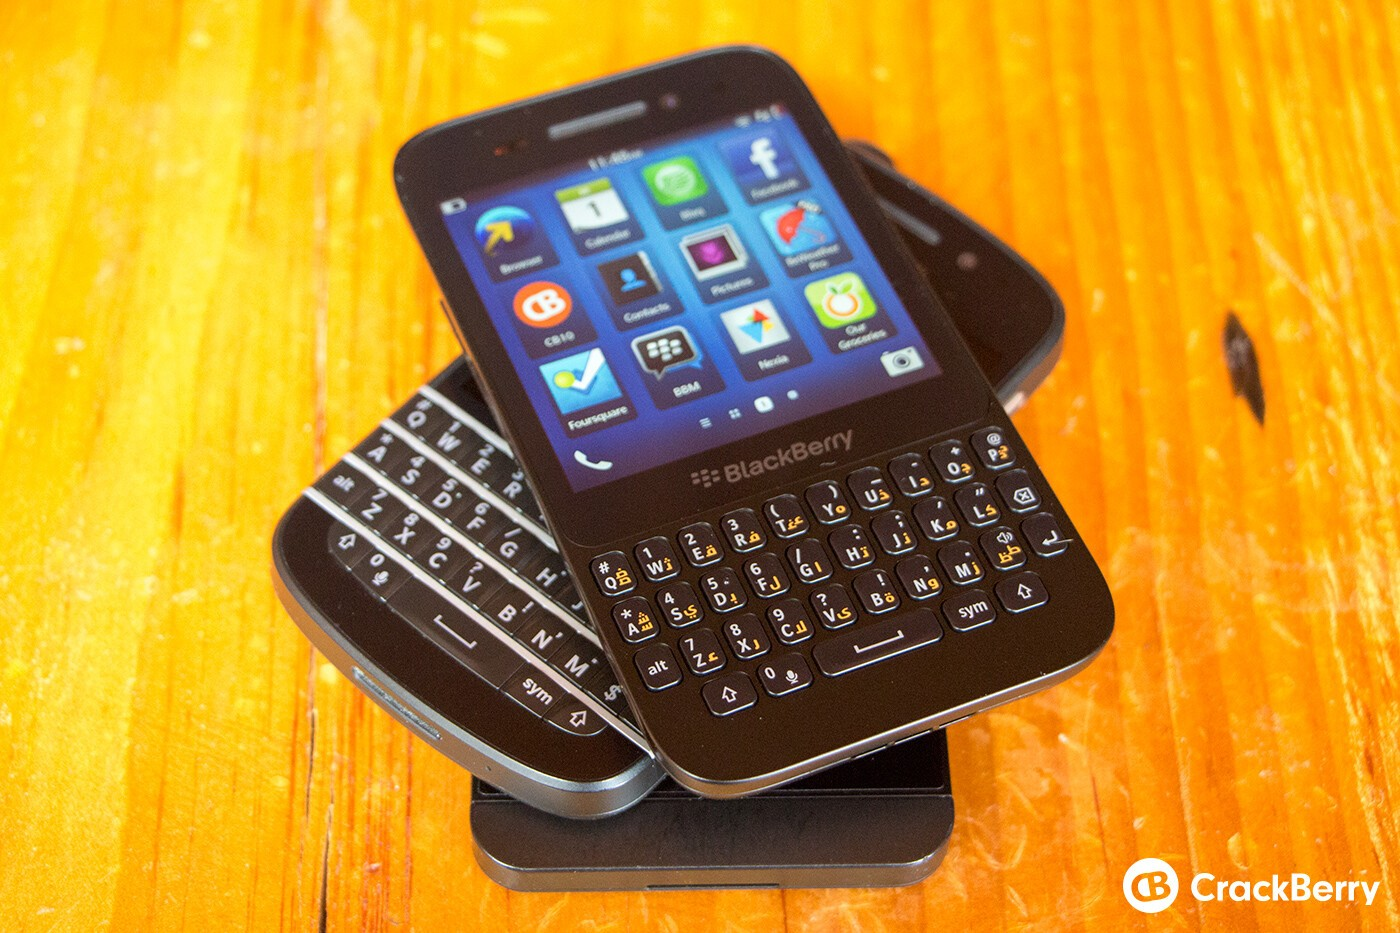 Leaked OS 10 2 0 1323 for the BlackBerry Z10, BlackBerry Q5 and